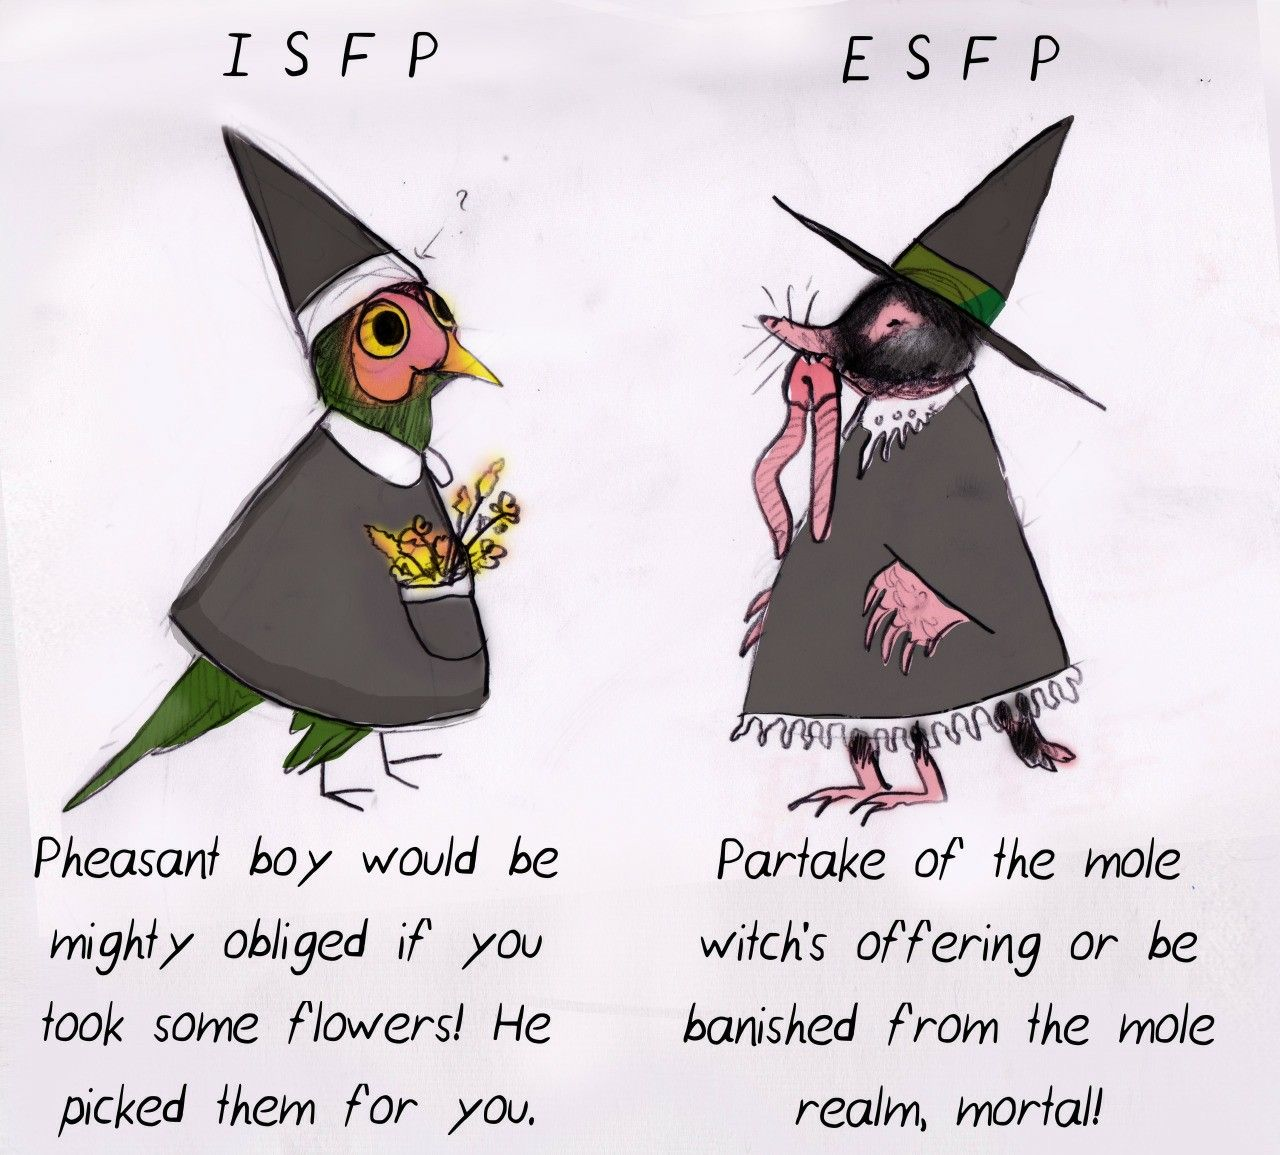 Pin by H h on types Mbti, Creature art, Isfp